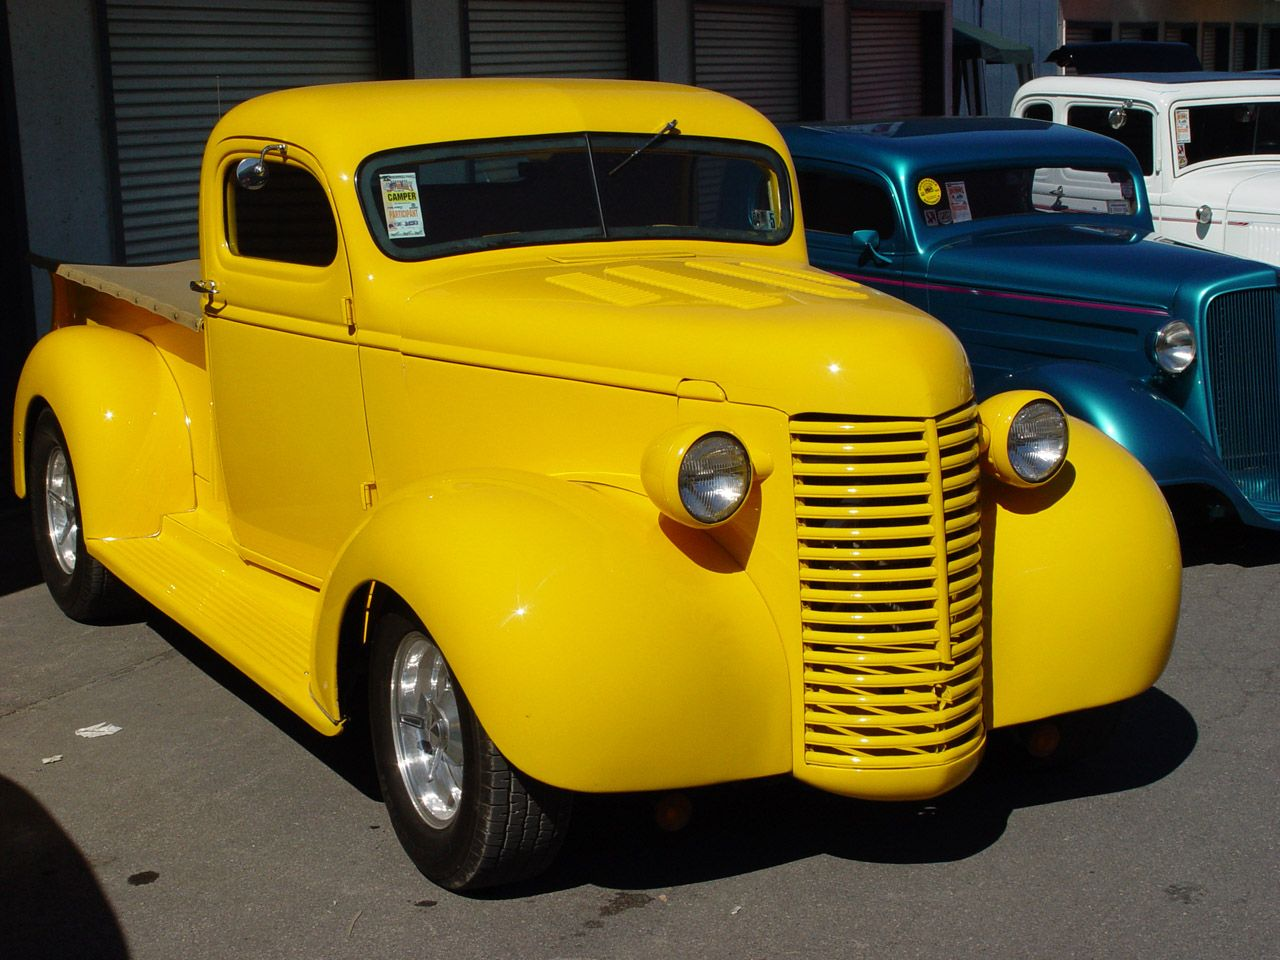 Cars colored yellow - Http Www Seriouswheels Com Pics 1930 1939 1939 Chevrolet Pickup Yellow Fa Sy 1280x960 Jpg Vintage Pick Up Trucks Pinterest Chevy Vehicles And